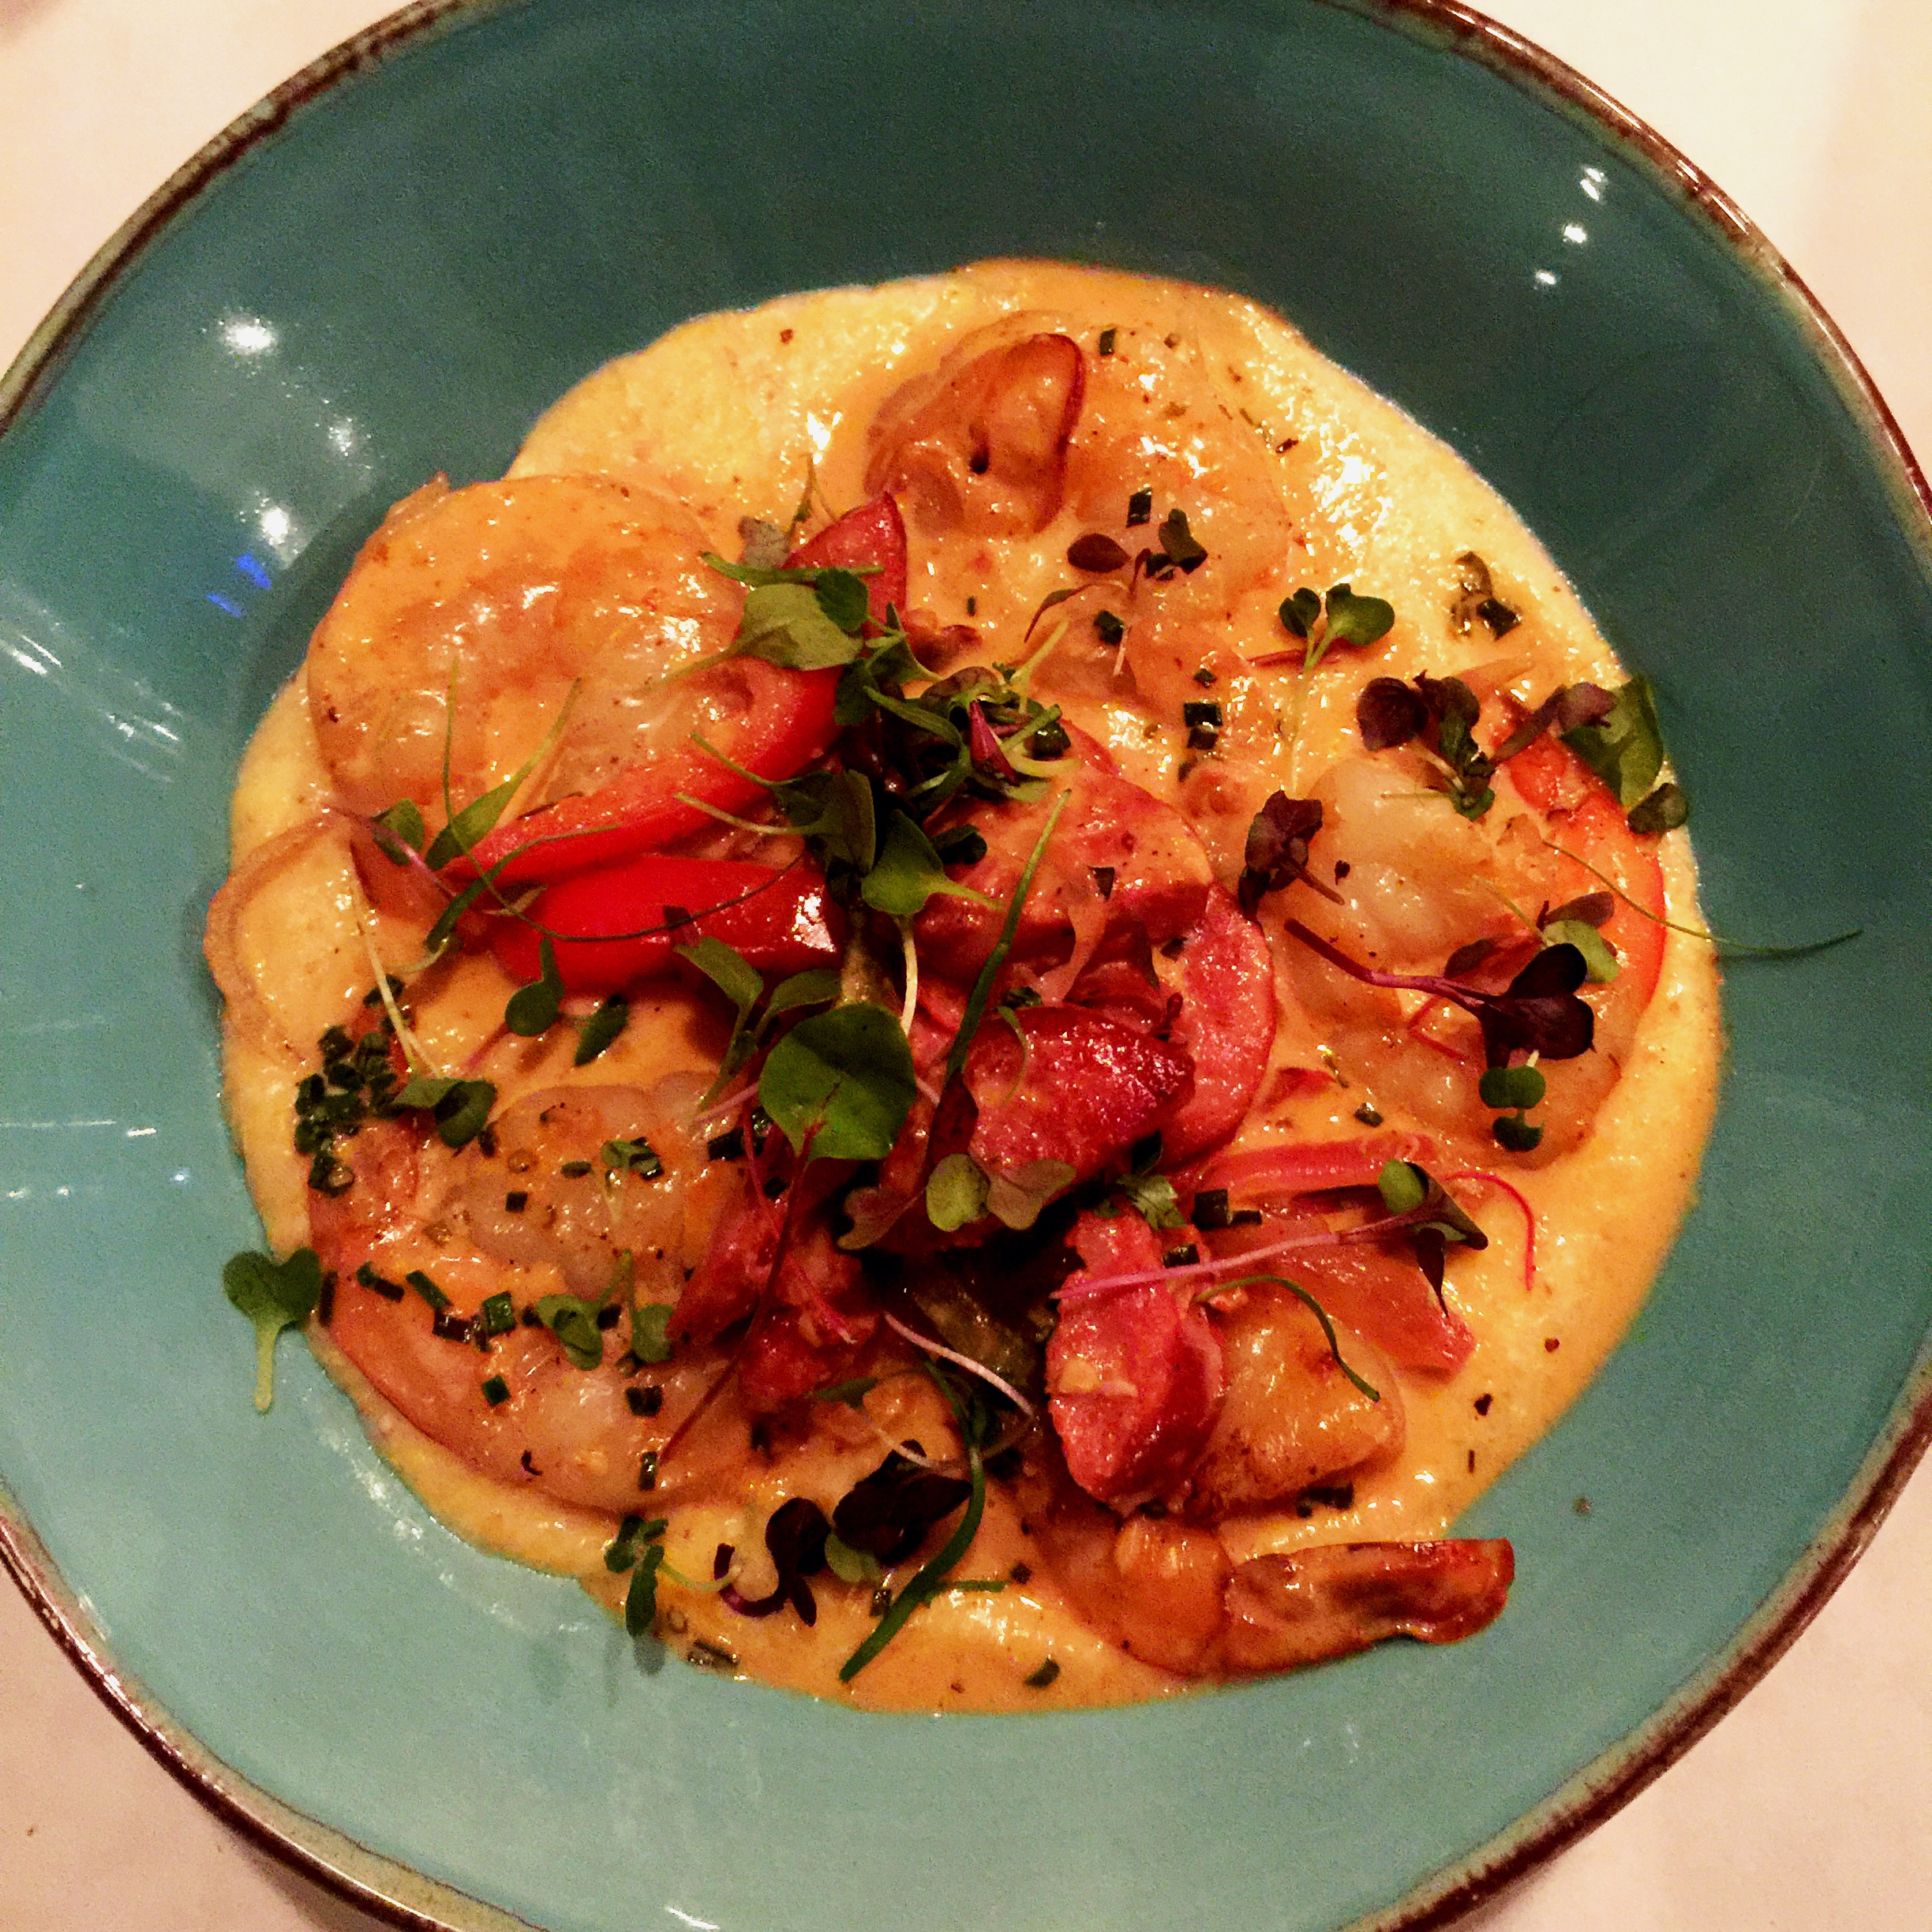 Shrimp and Grits at Mack Kates Cafe